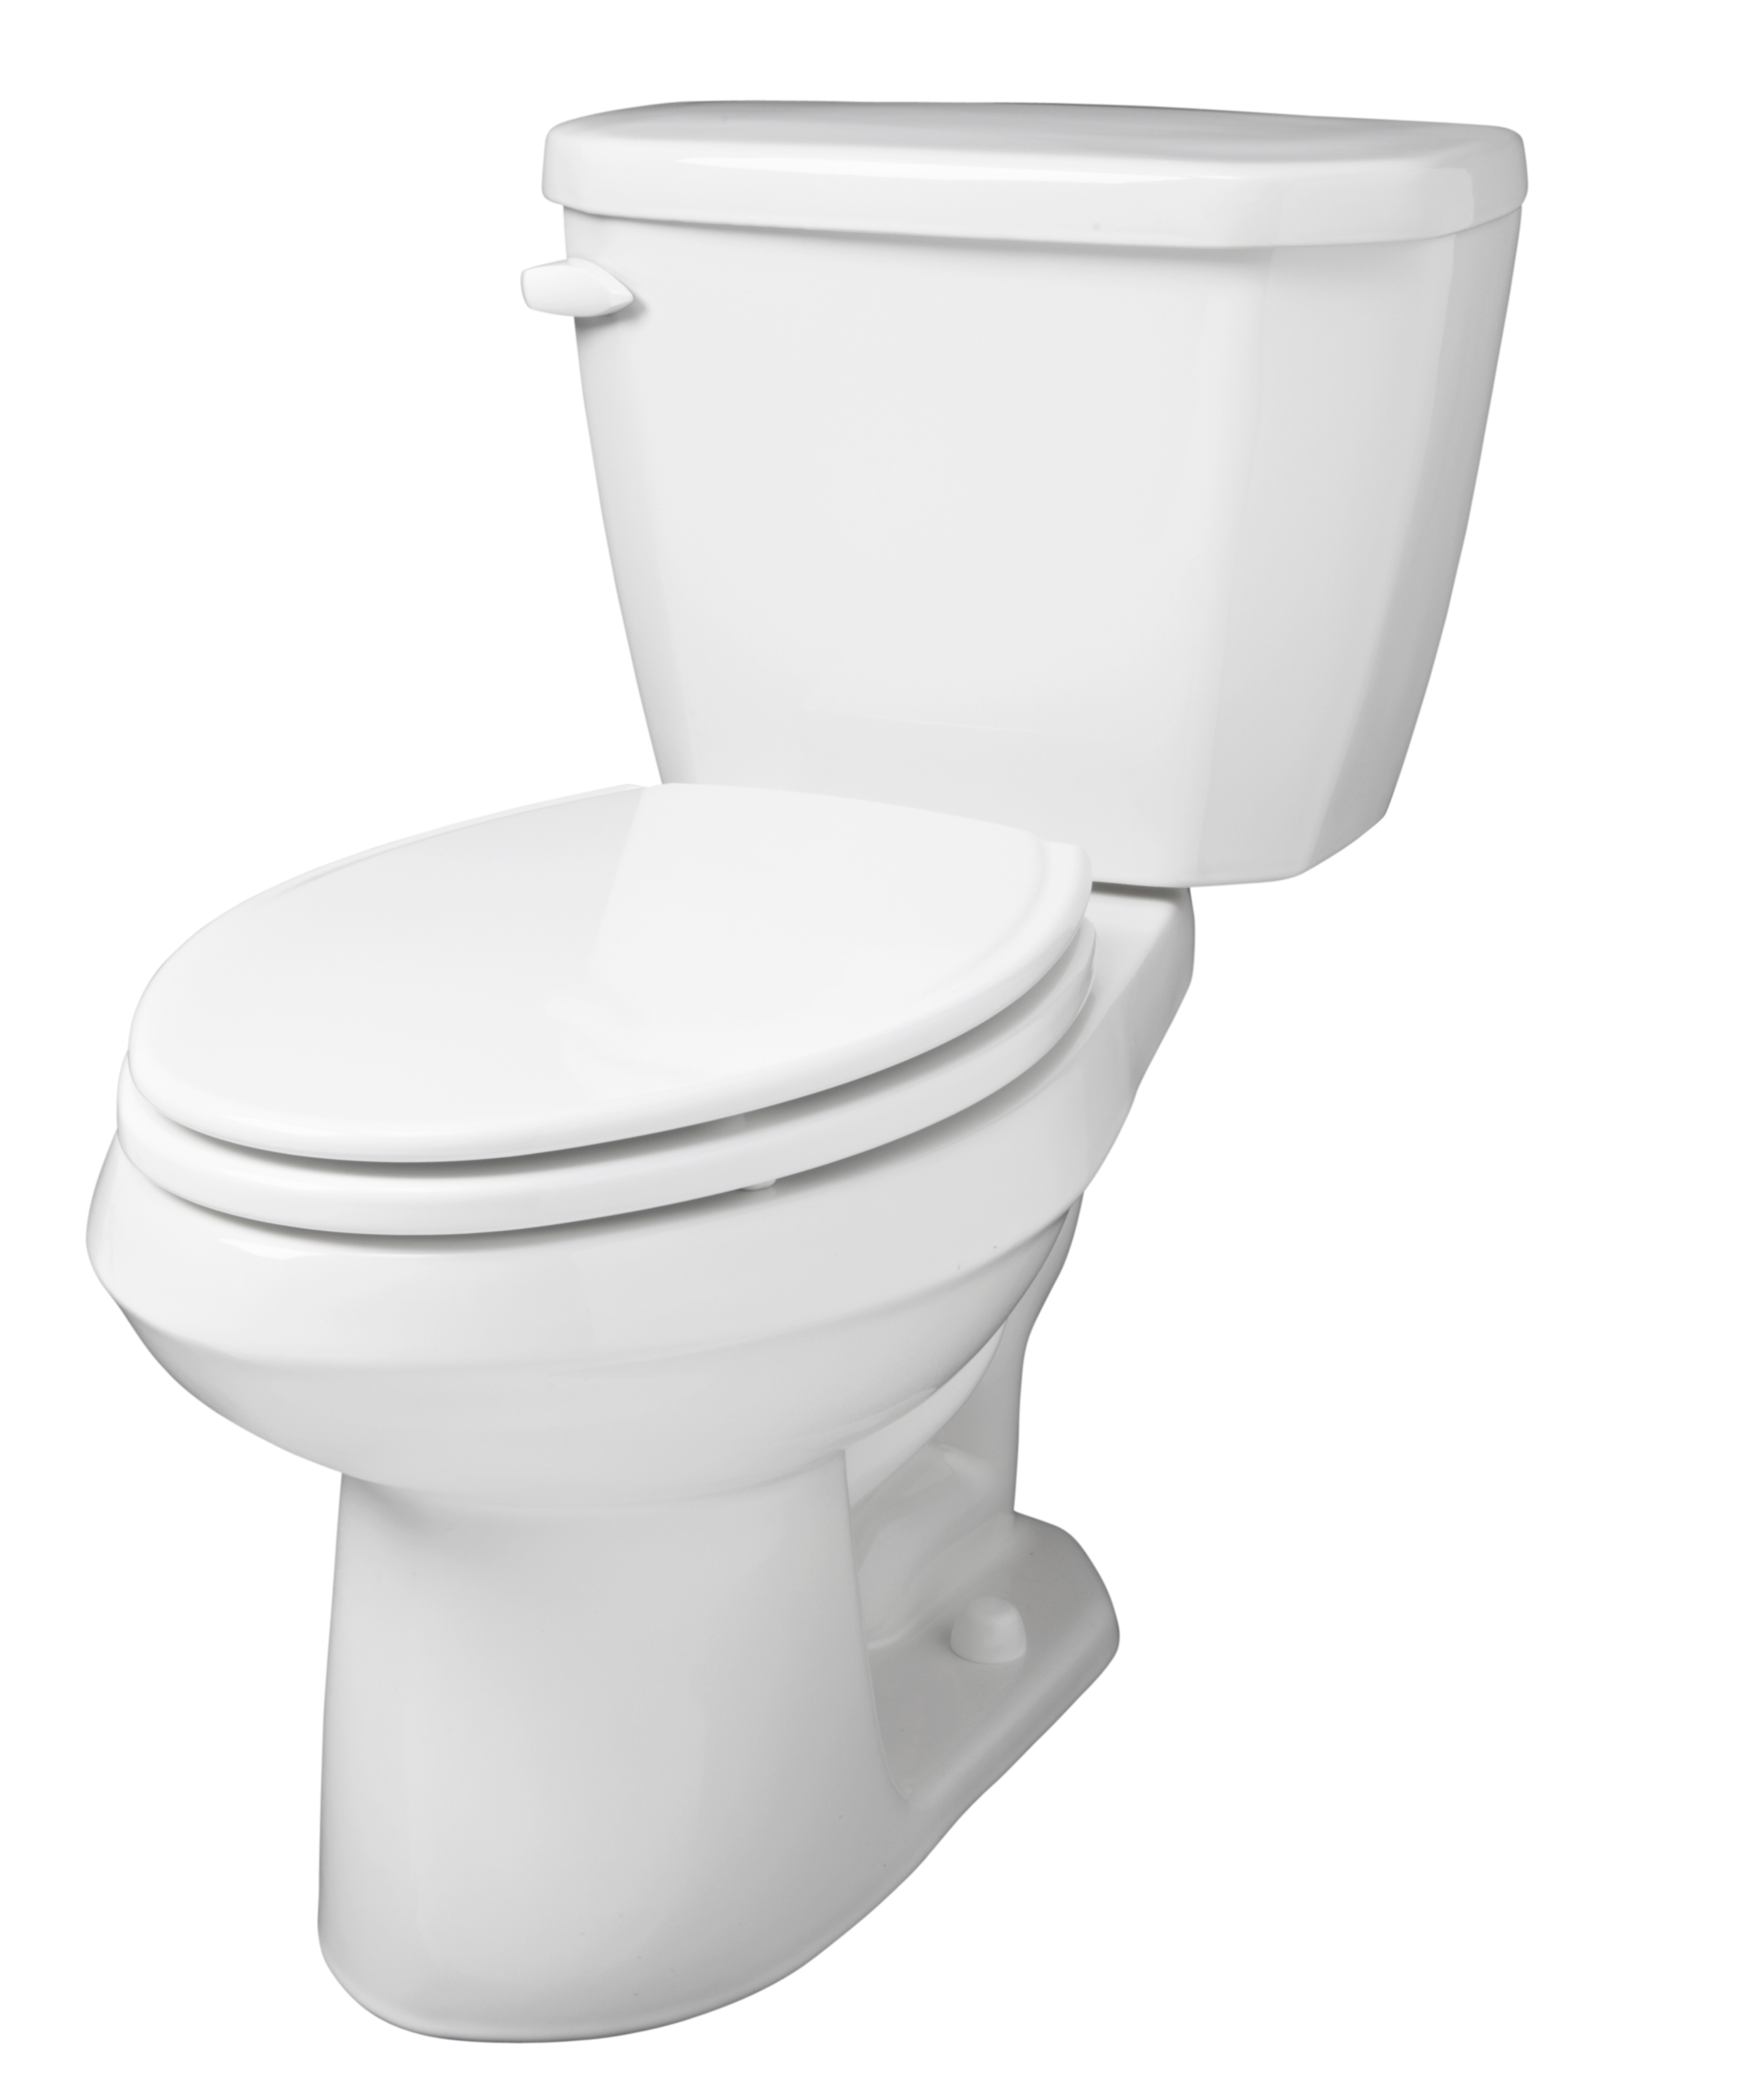 Viper 128 Gpf 10 Rough In Two Piece Elongated Toilet Gerber